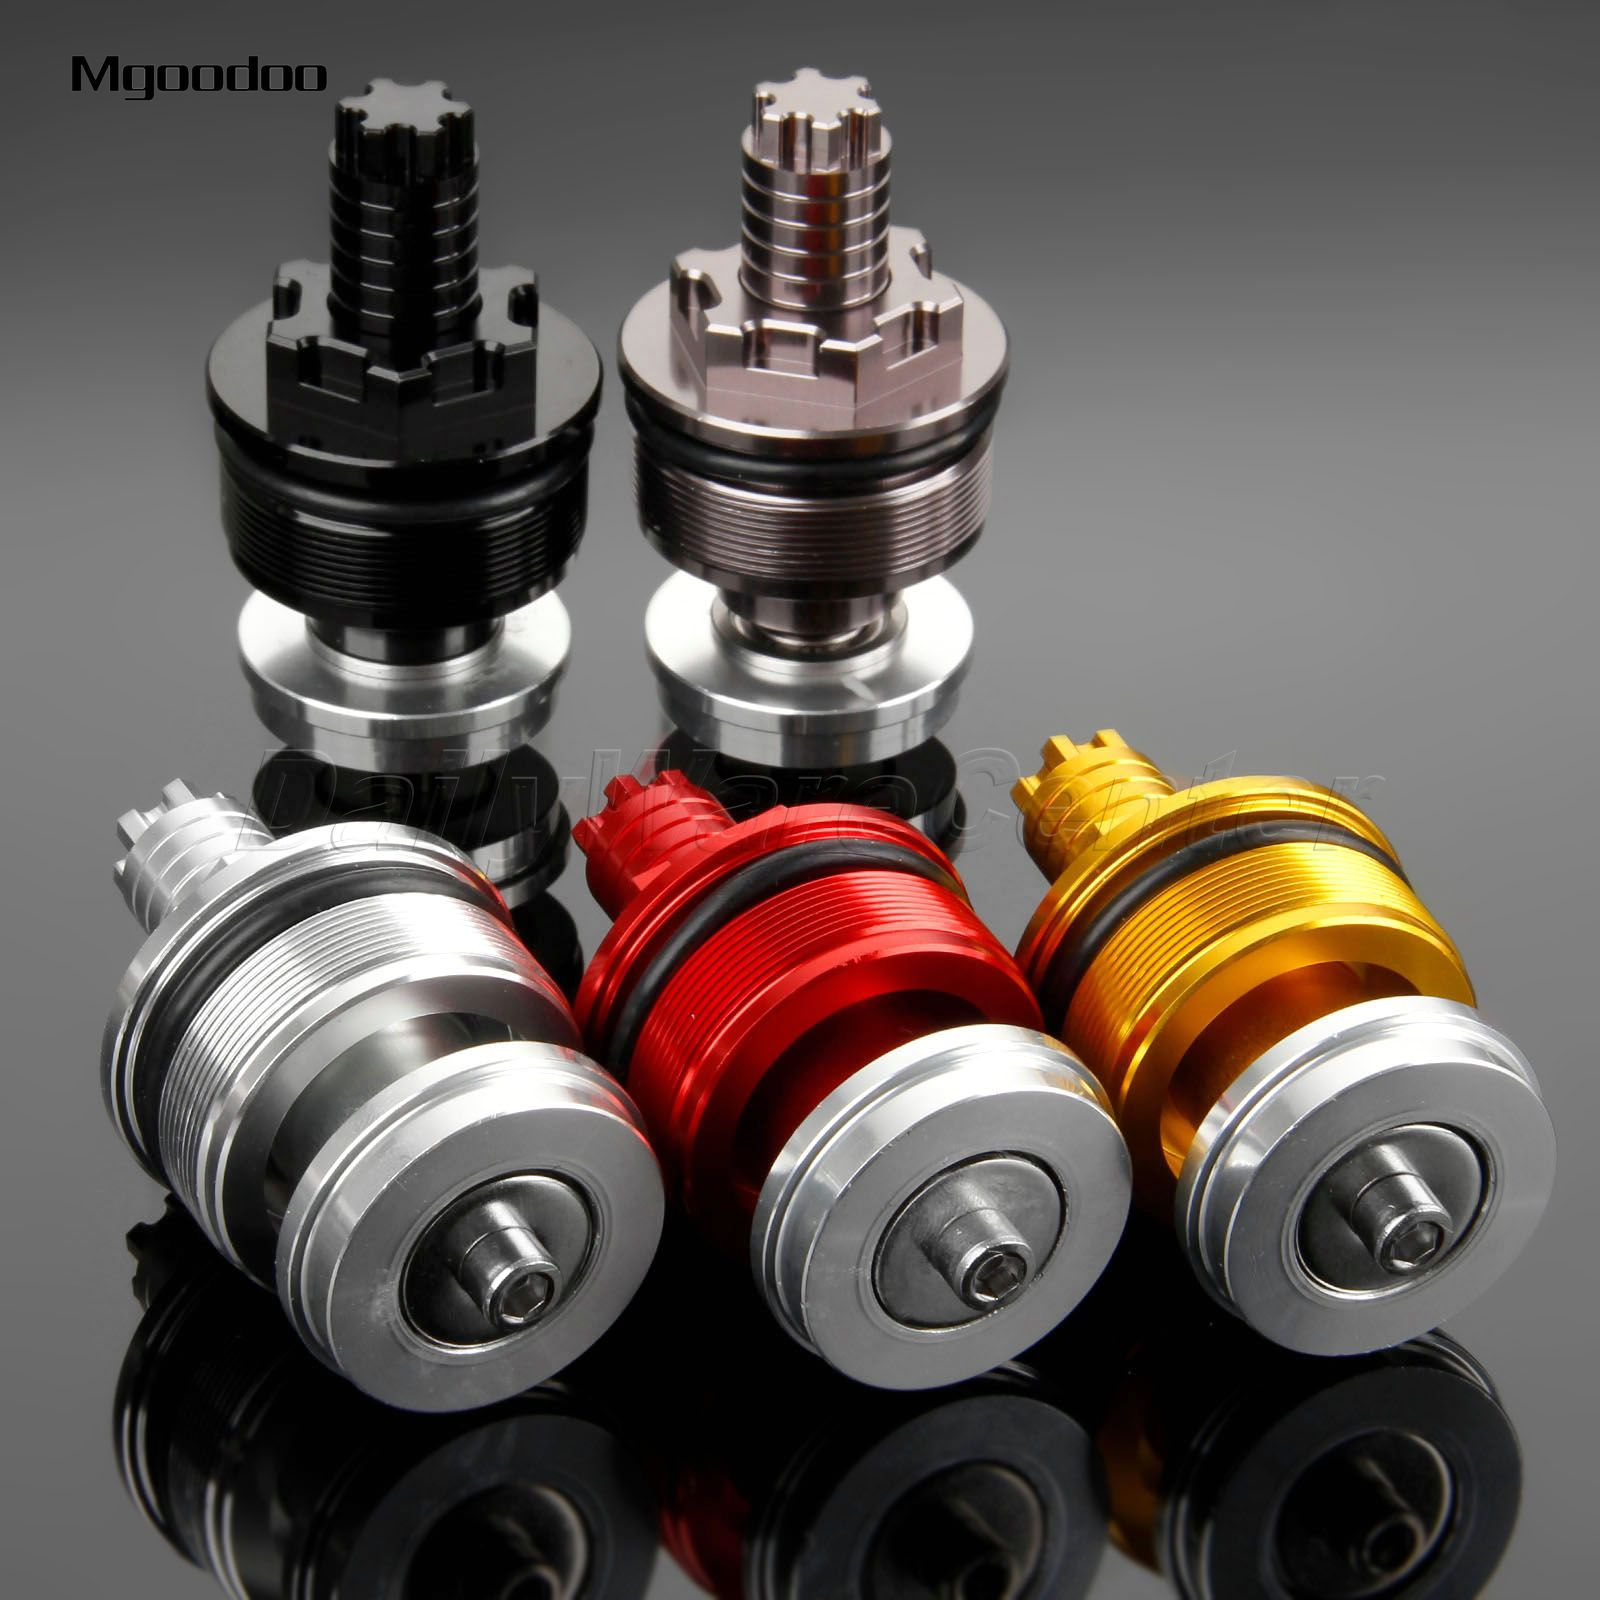 New 2Pc 41MM Motorcycle Preload Adjusters Fork Bolts Cap CNC Aluminum For Yamaha YZF R3 2015 2016 YZF R25 2013 2014 High Quality 14mm fork preload adjusters for yamaha mt 09 mt09 2013 2014 yzfr1 yzf r1 1998 2014 yzfr6 yzf r6 2005